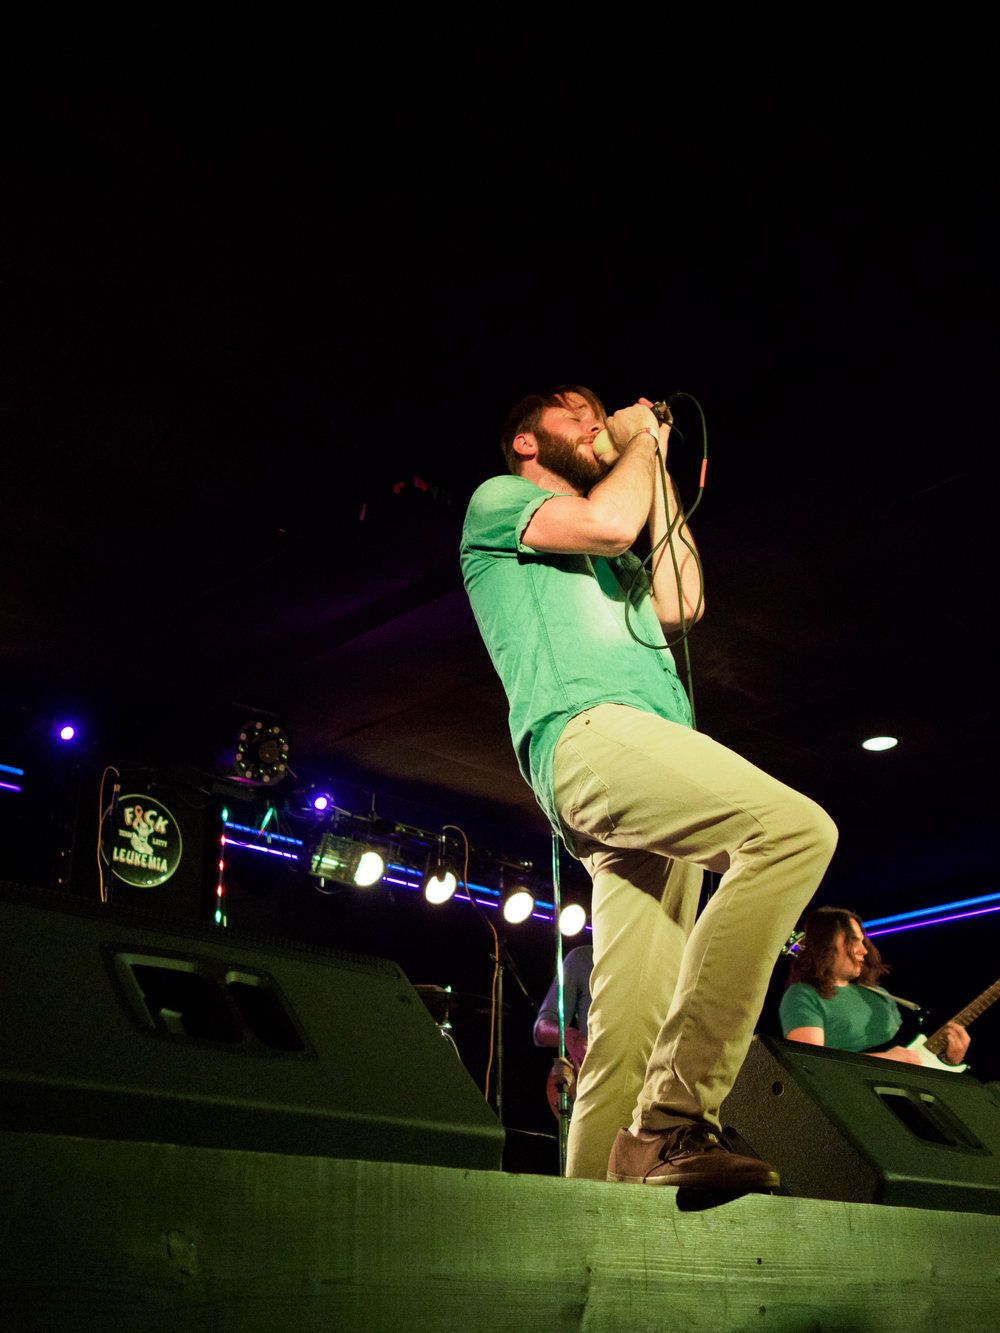 17-06-10_Concert_at_the_Foundry_6100134.JPG